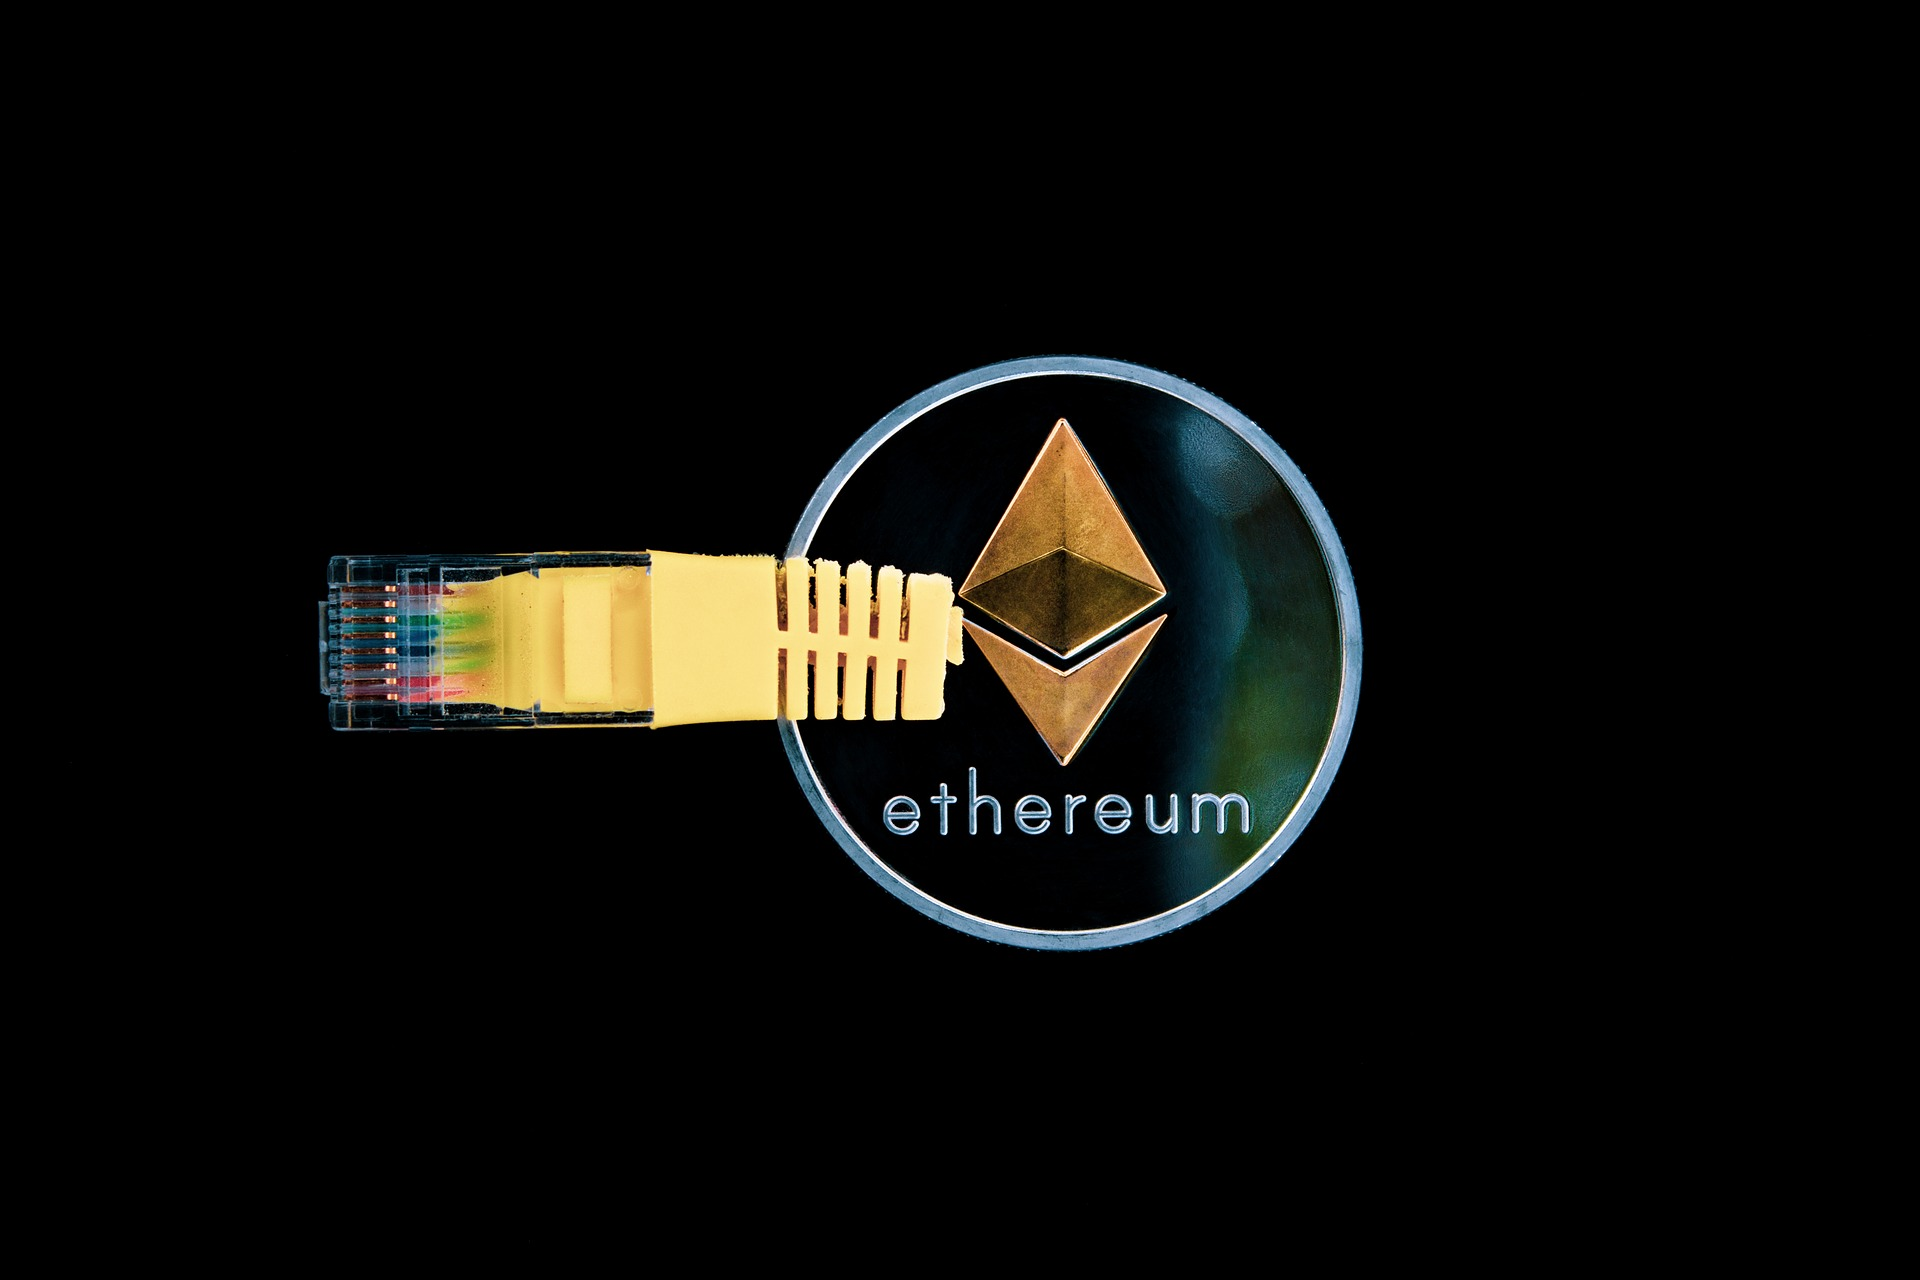 Ethereum Nodes have now Become Part of the International Space Station Expedition